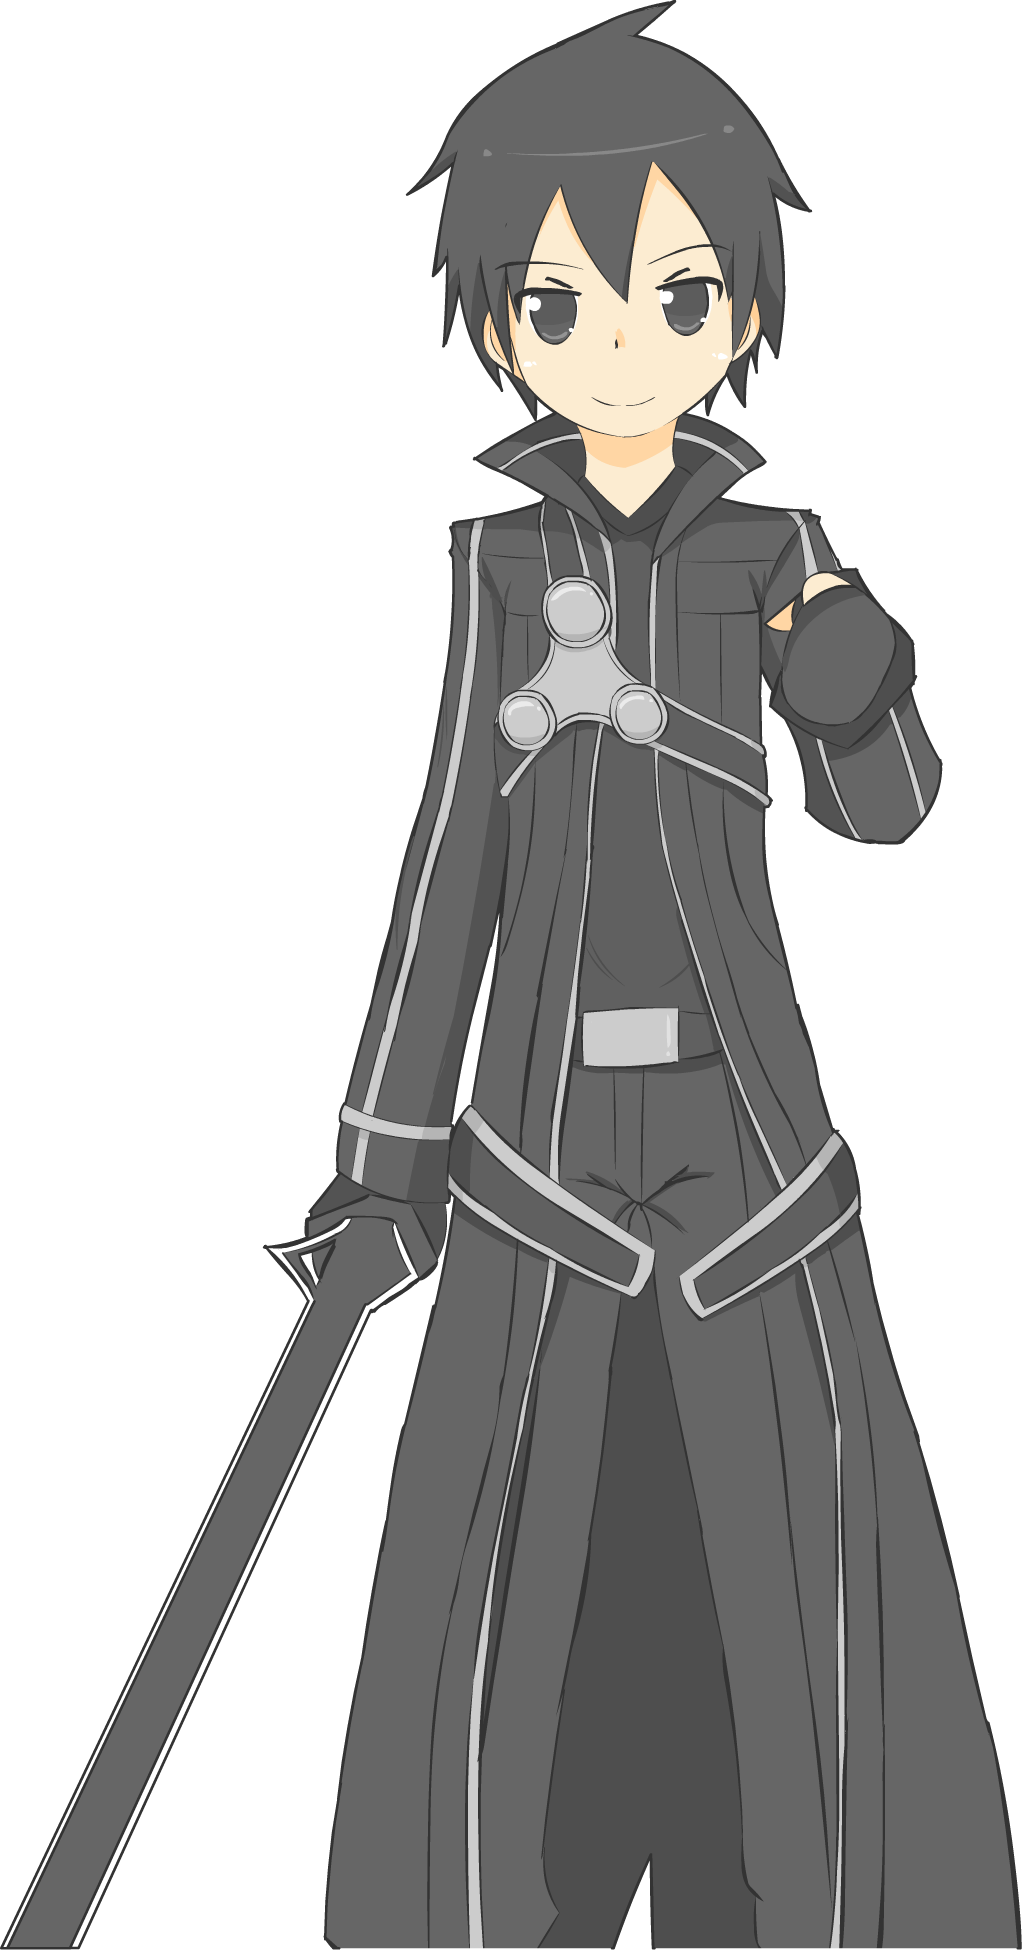 Kirito Sao By Rong Rong On Deviantart